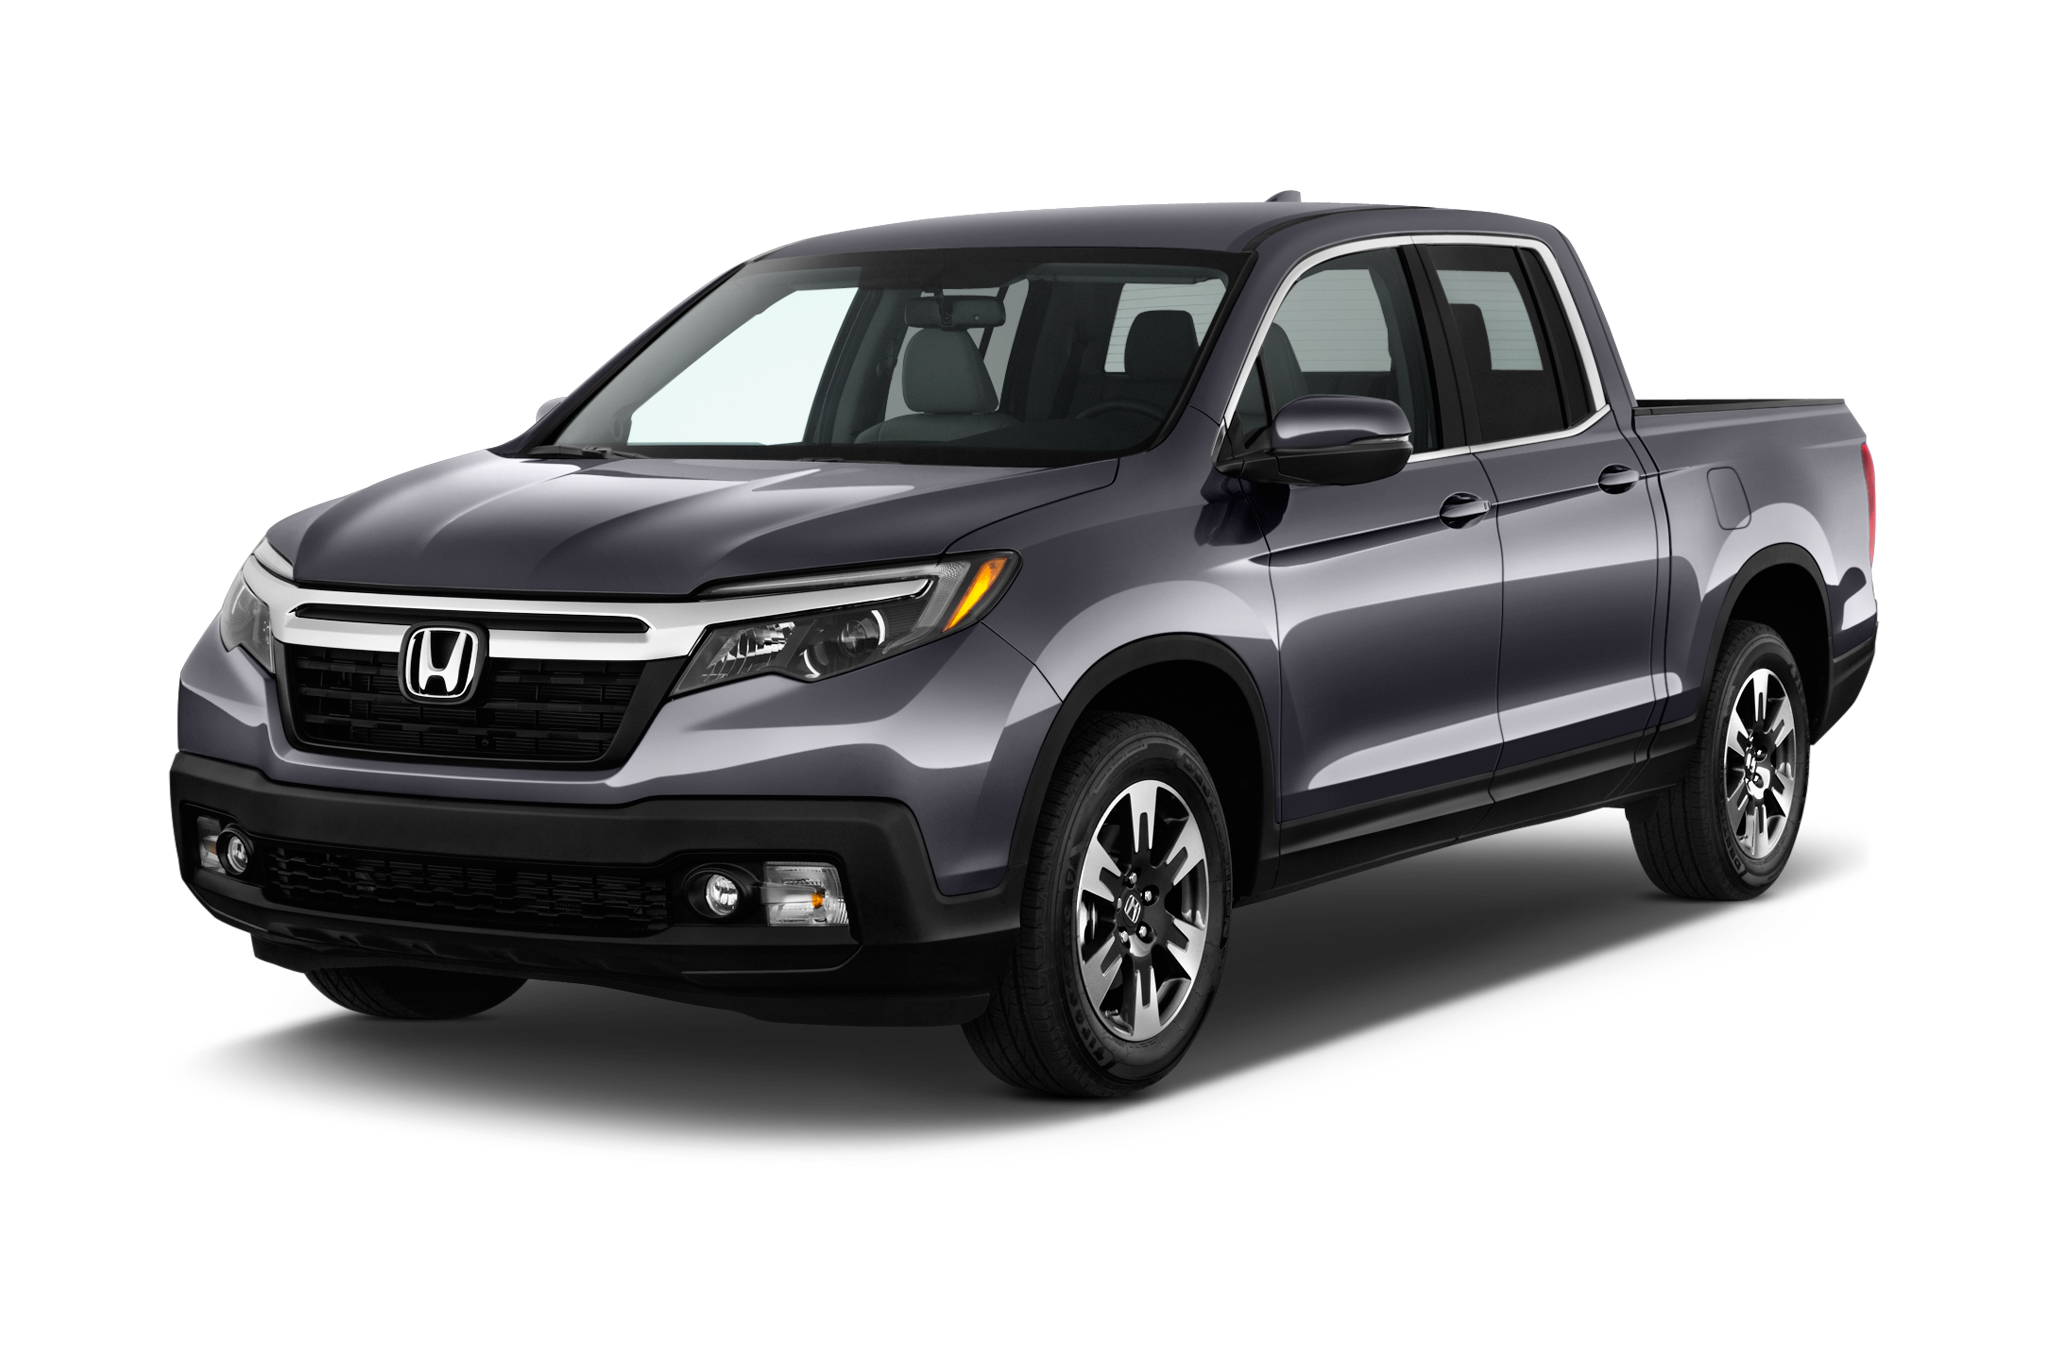 2017-honda-ridgeline-rtl-t-pick-up-angular-front.png